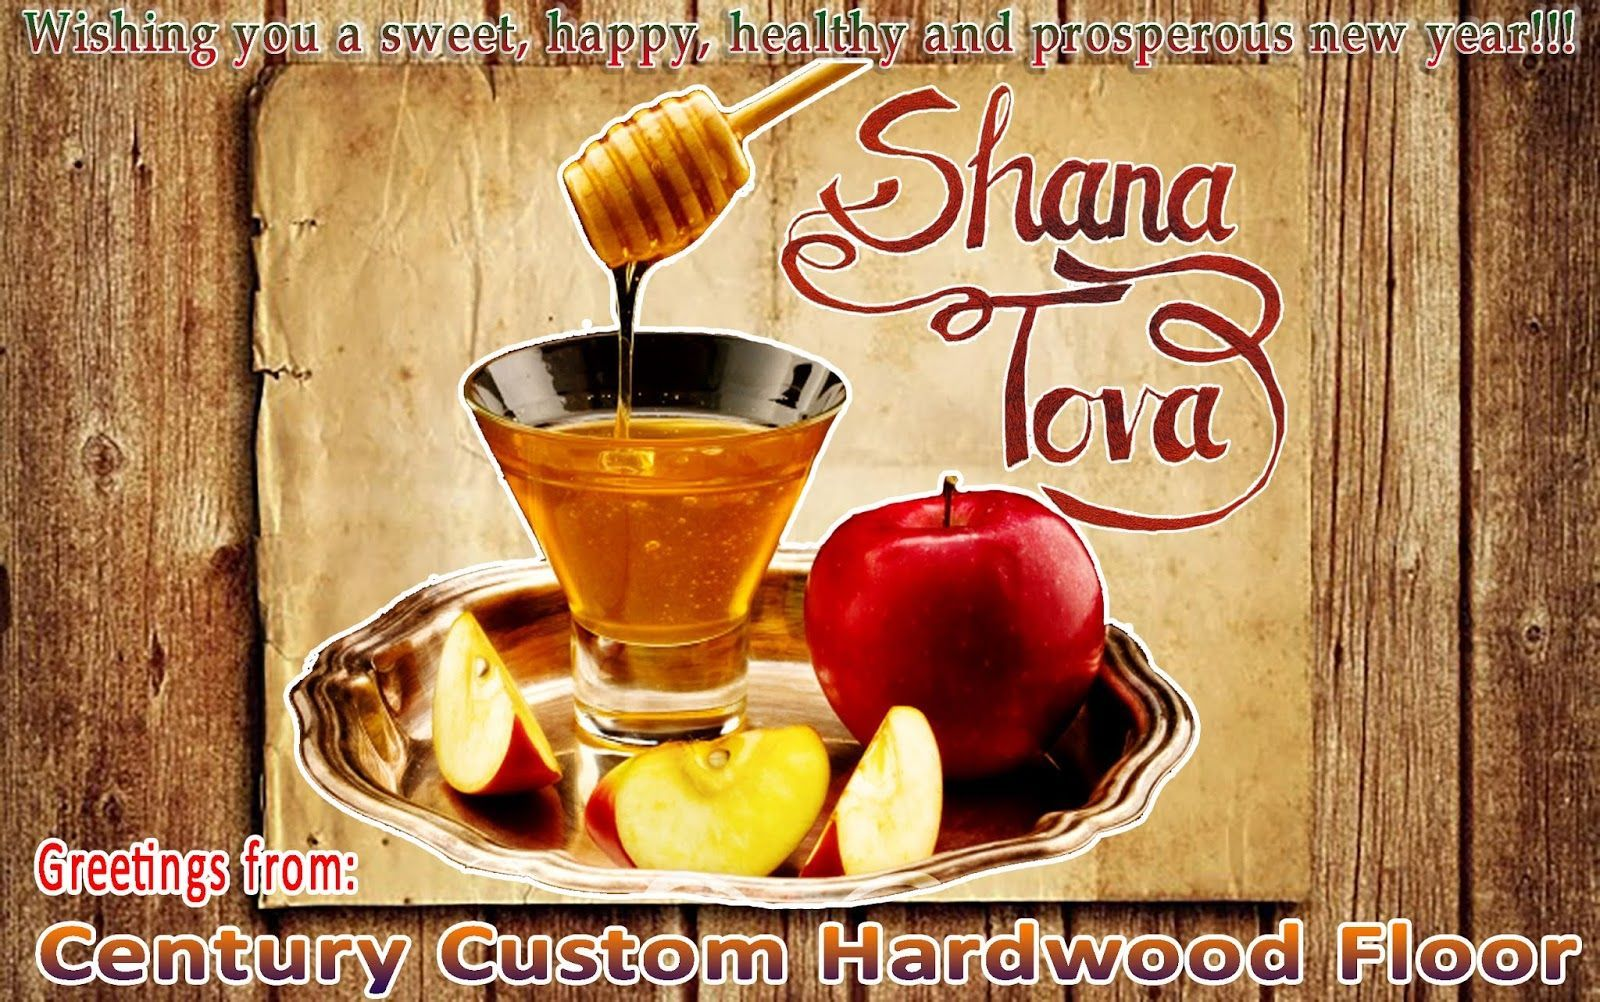 Century Custom Hardwood Floor: L'shanah Tovah! Happy Rosh Hashanah! Greetings fro... #happyroshhashanah Century Custom Hardwood Floor: L'shanah Tovah! Happy Rosh Hashanah! Greetings fro... #happyroshhashanah